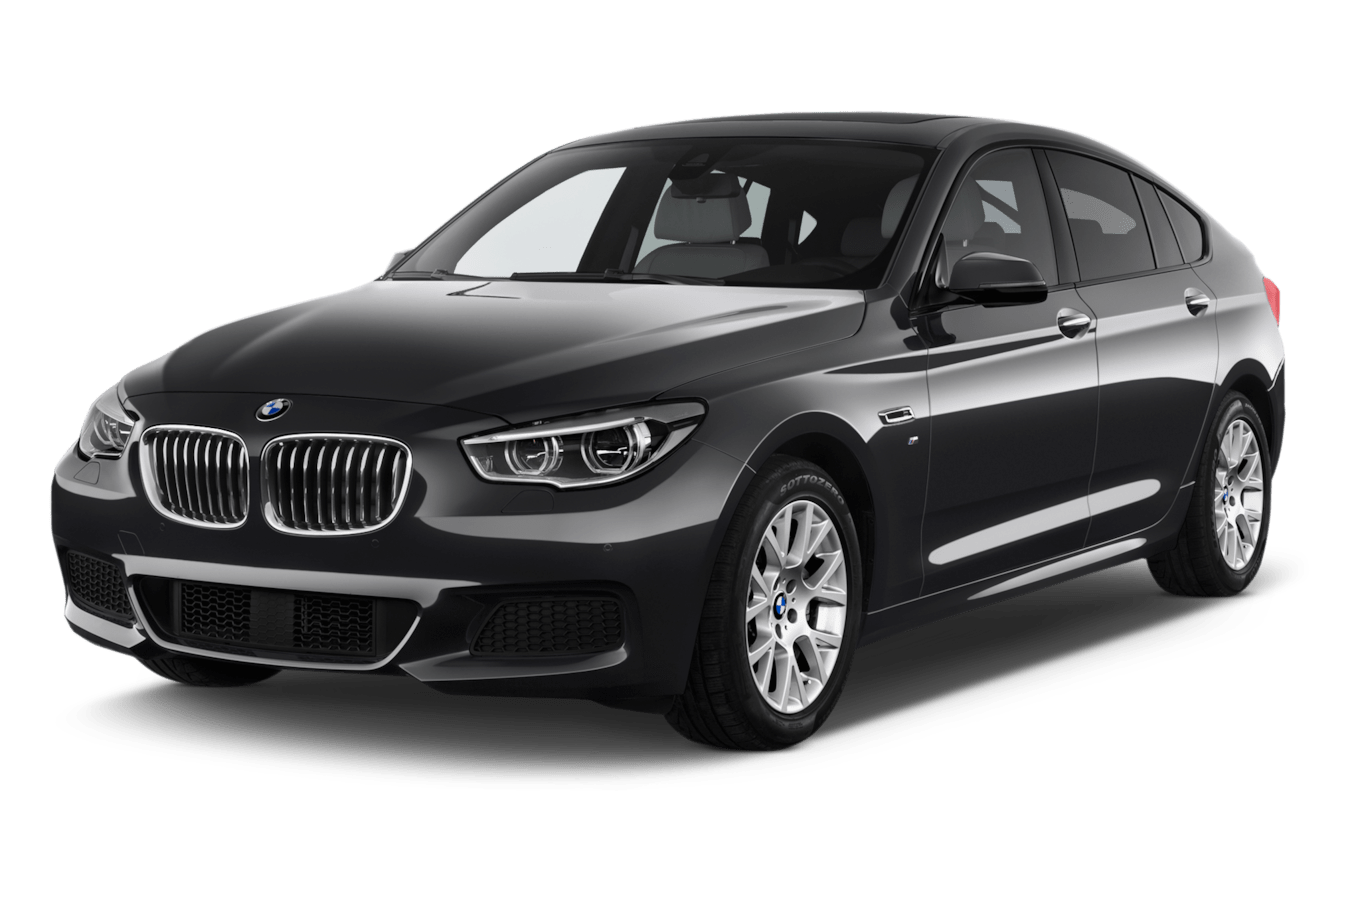 2014 bmw 5 series reviews research 5 series prices u0026 specsbmw 550 engine diagram  [ 392:261 x 1360 Pixel ]